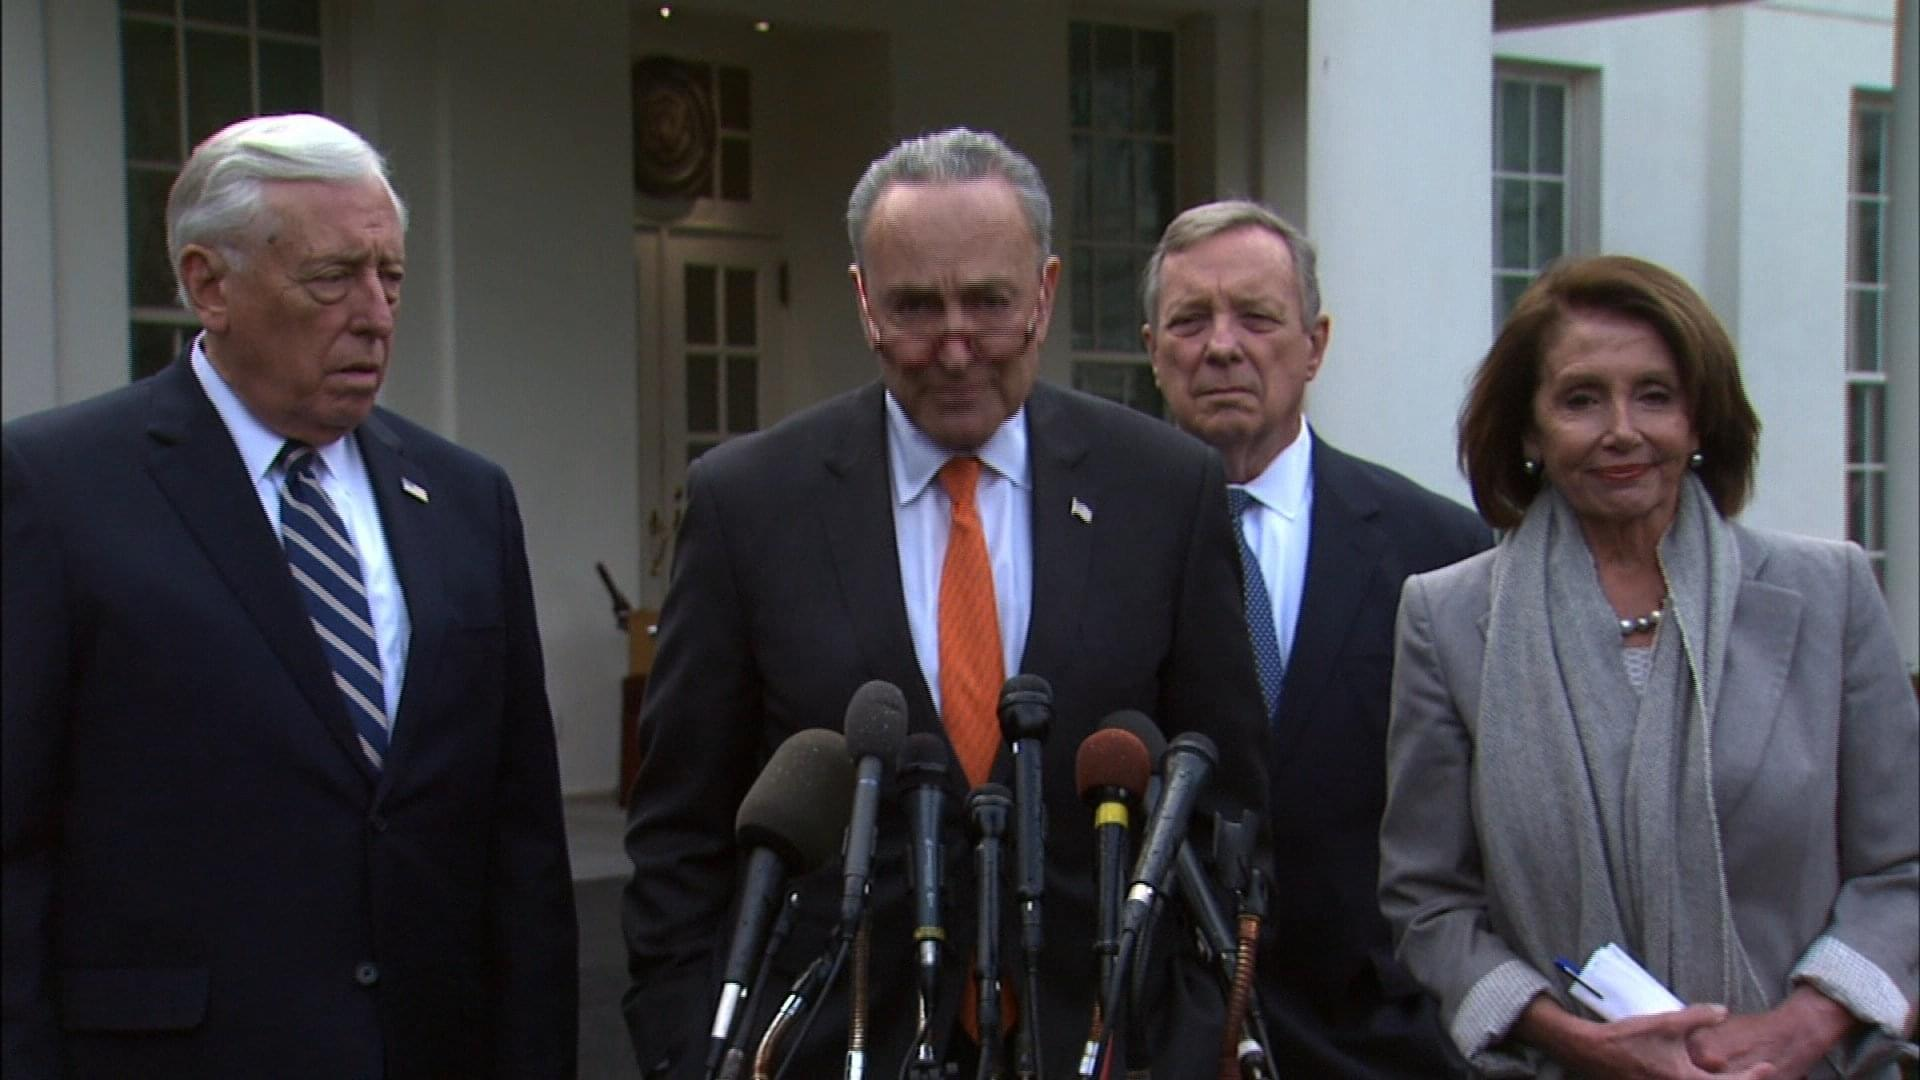 Trump walks out of shutdown meeting, calling talks 'total waste of time'